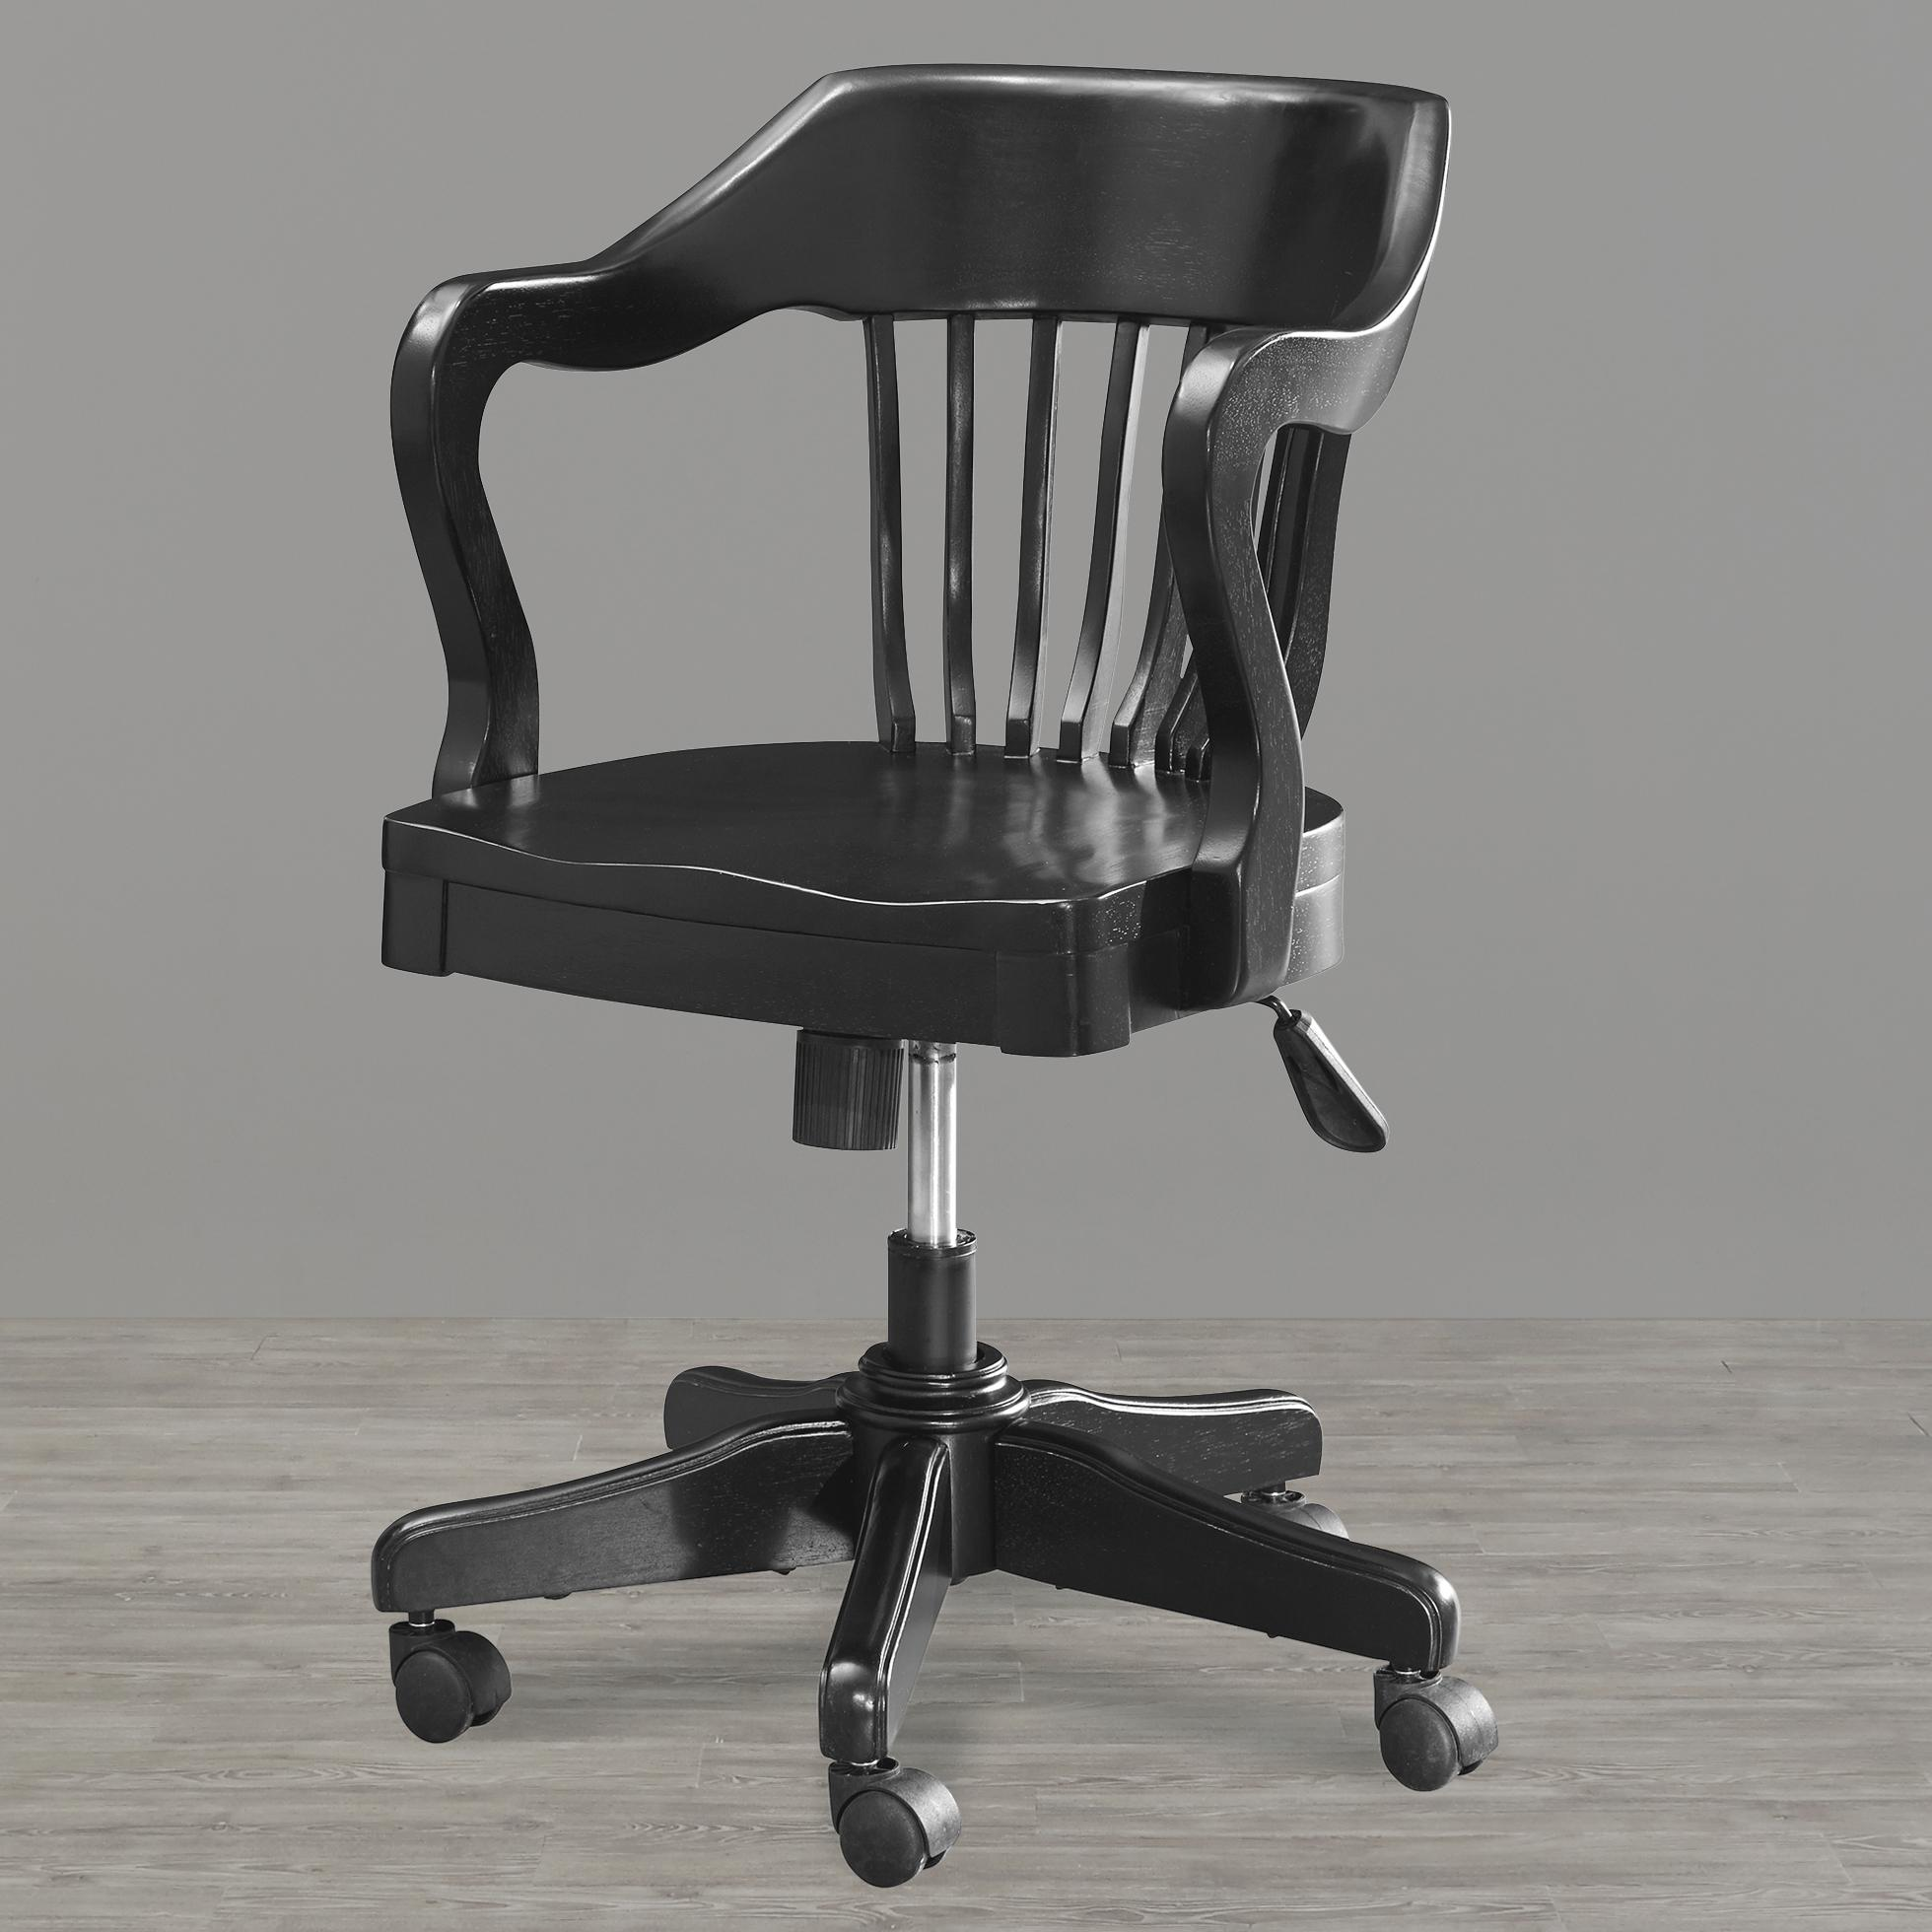 Smartstuff Black and White Desk Chair - Item Number: 437B071